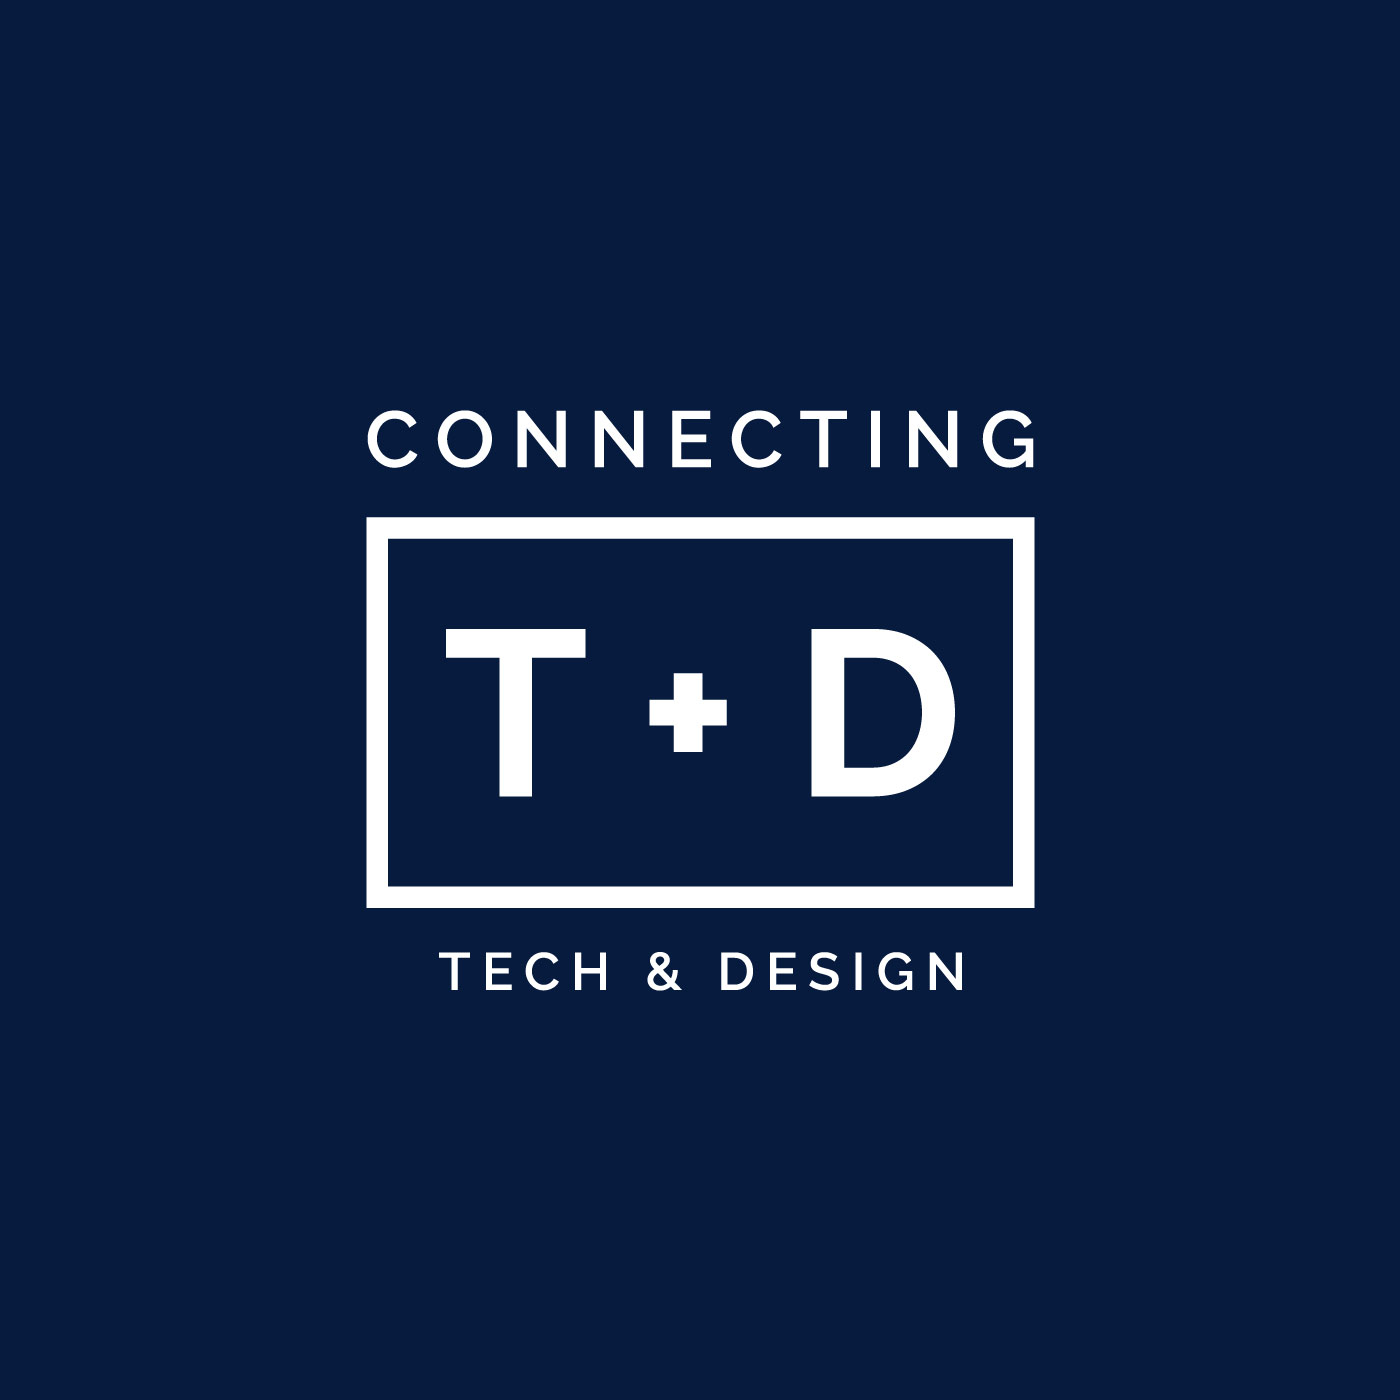 Tech Talk: Hosts from the KBTalks, CEDIA Podcast, AV Trade Talk, and Connecting Tech + Design podcasts and a couple of AV integrators share tech shown at CEDIA Expo 2019 and trends they're following